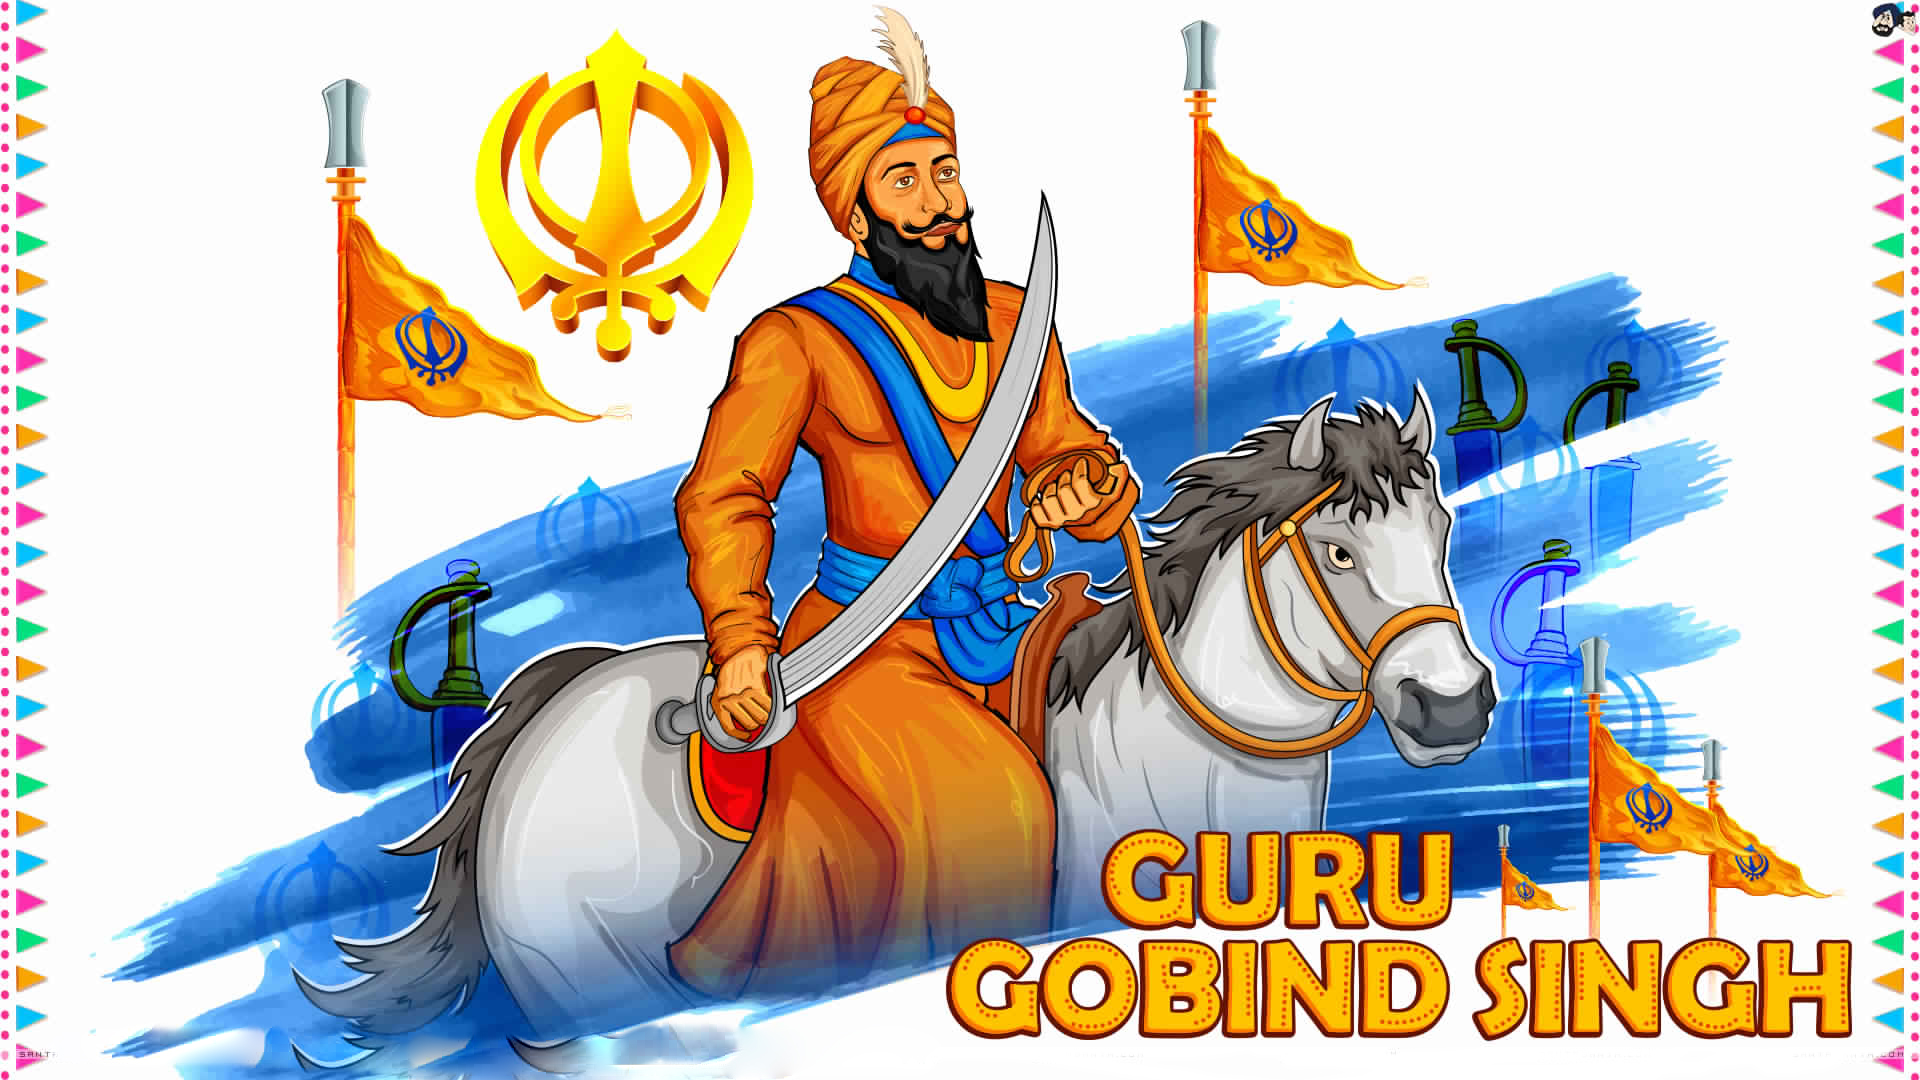 Guru Gobind Singh Ji Hd Wallpaper Free Download